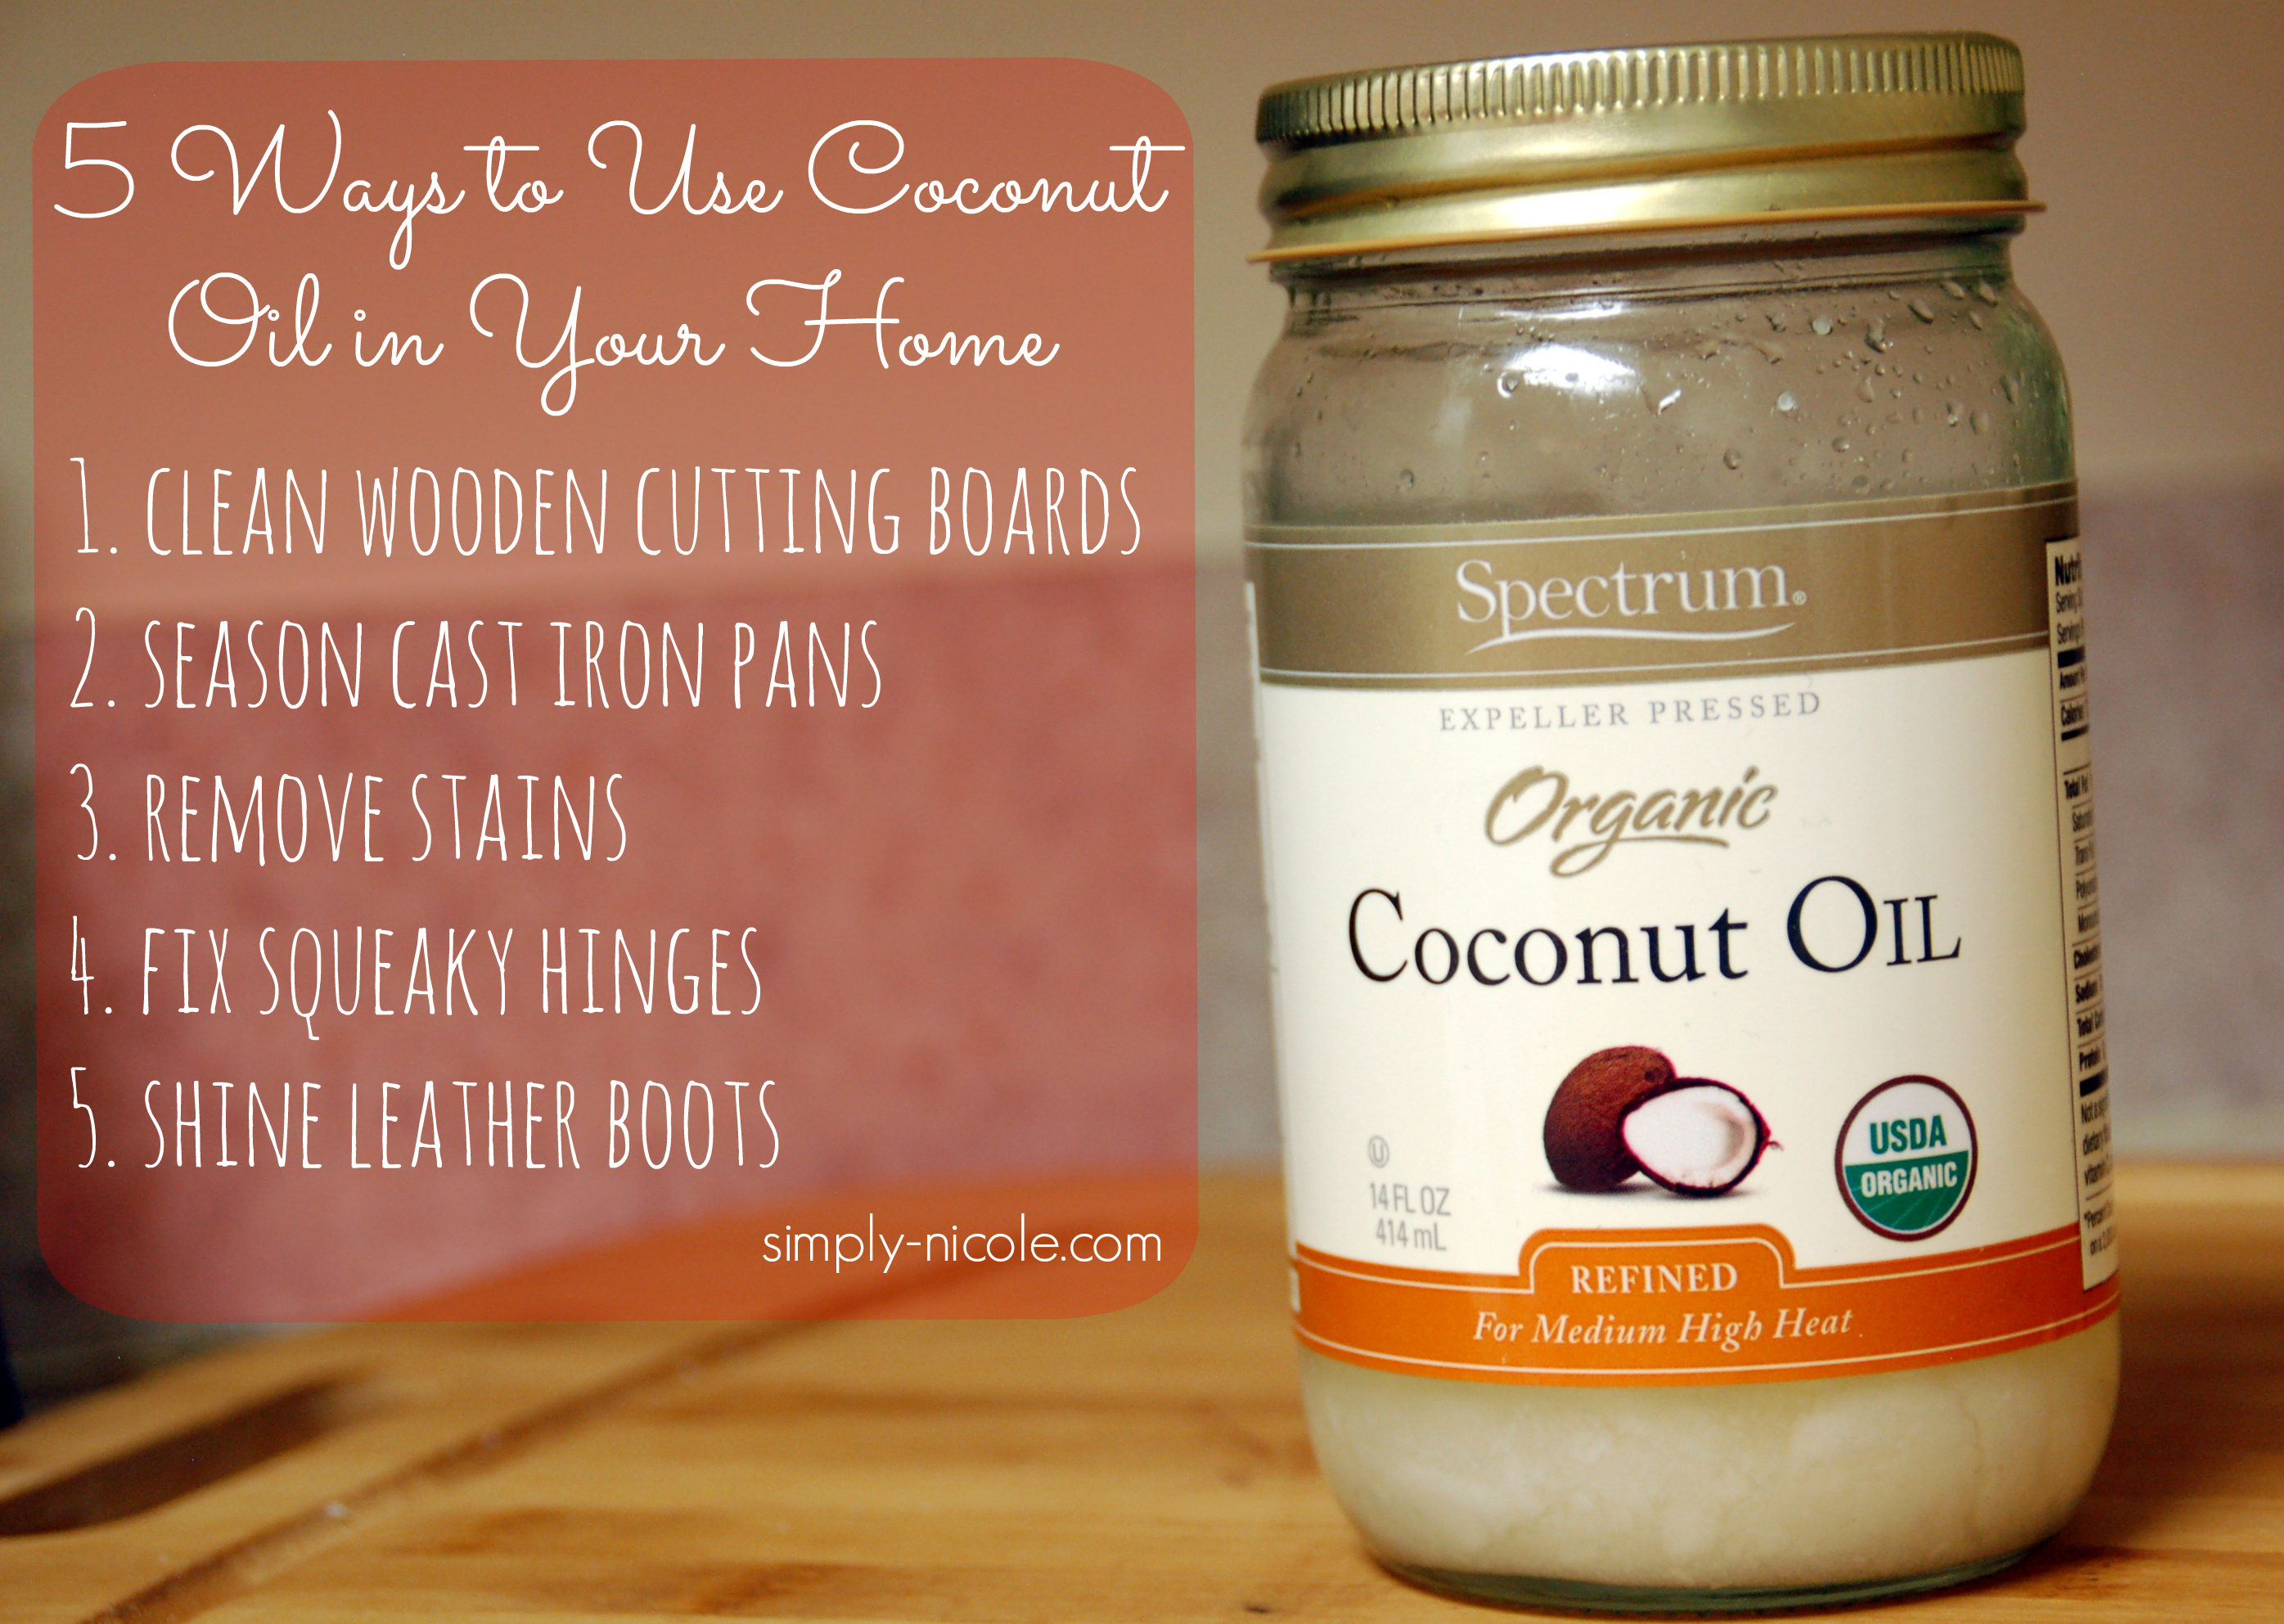 5 Ways to Use Coconut Oil in Your Home - Simply Nicole